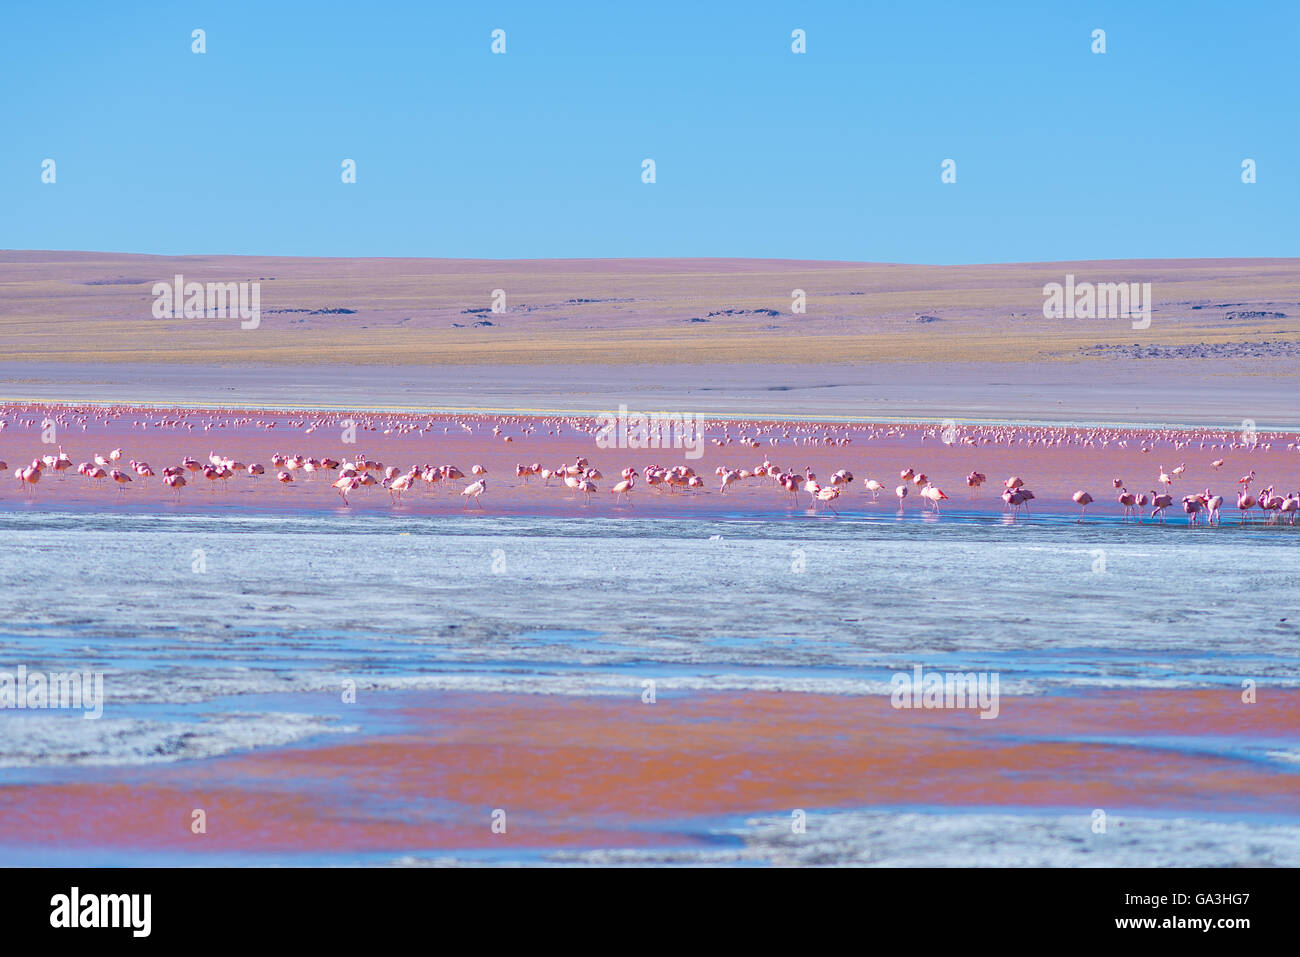 Group of pink flamingos in the colorful water of 'Laguna Colorada' (Multicolored Salty Lake), among the - Stock Image